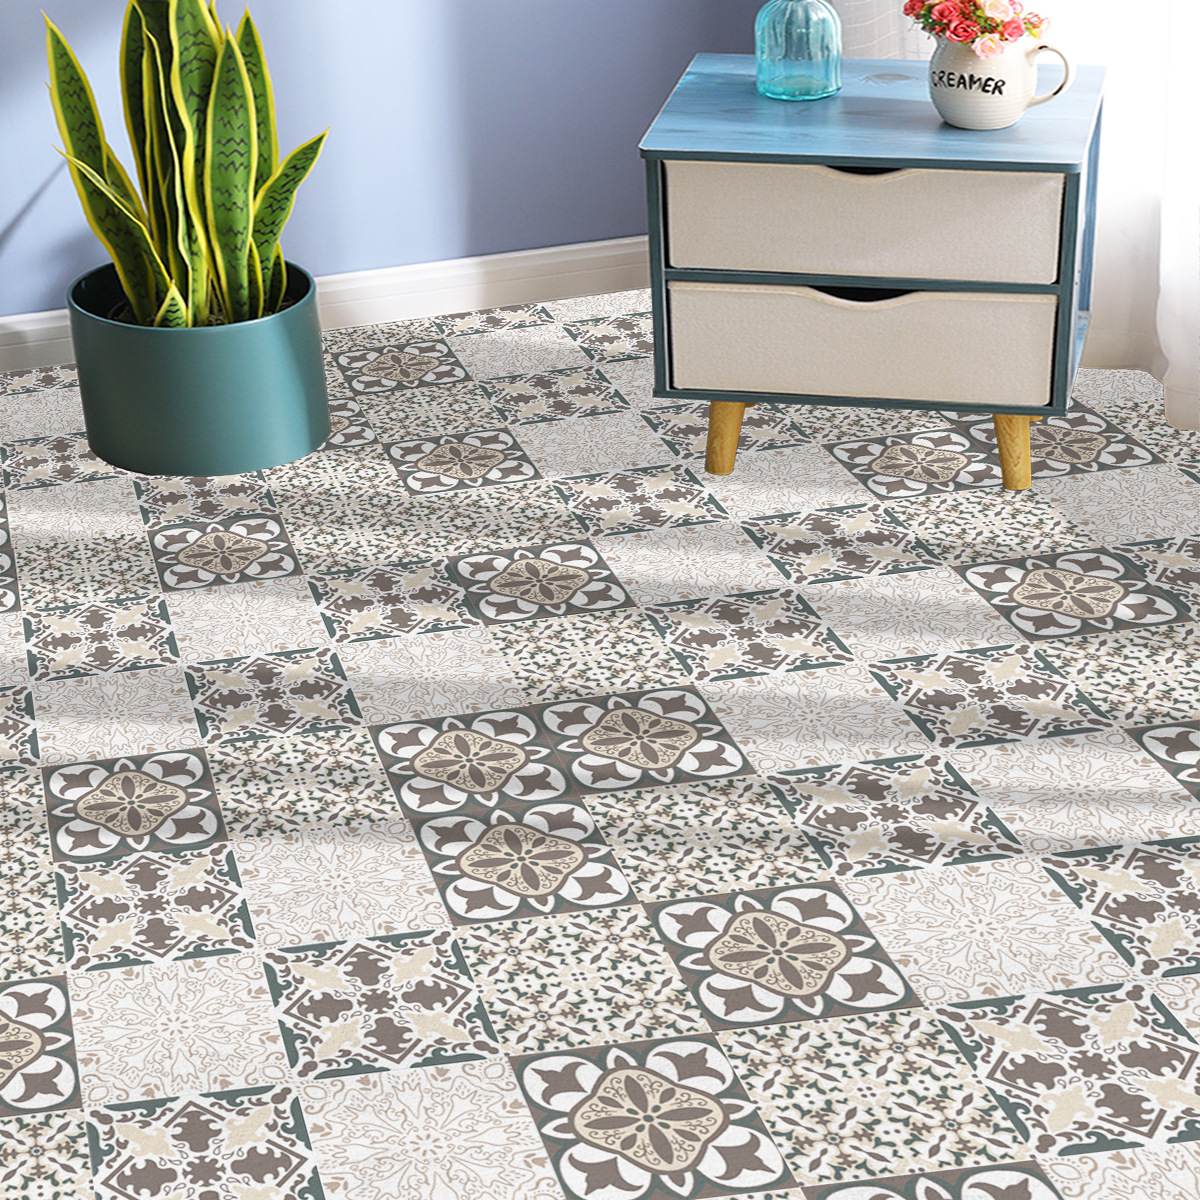 European Style Square Carpets for Homes Floor Protection